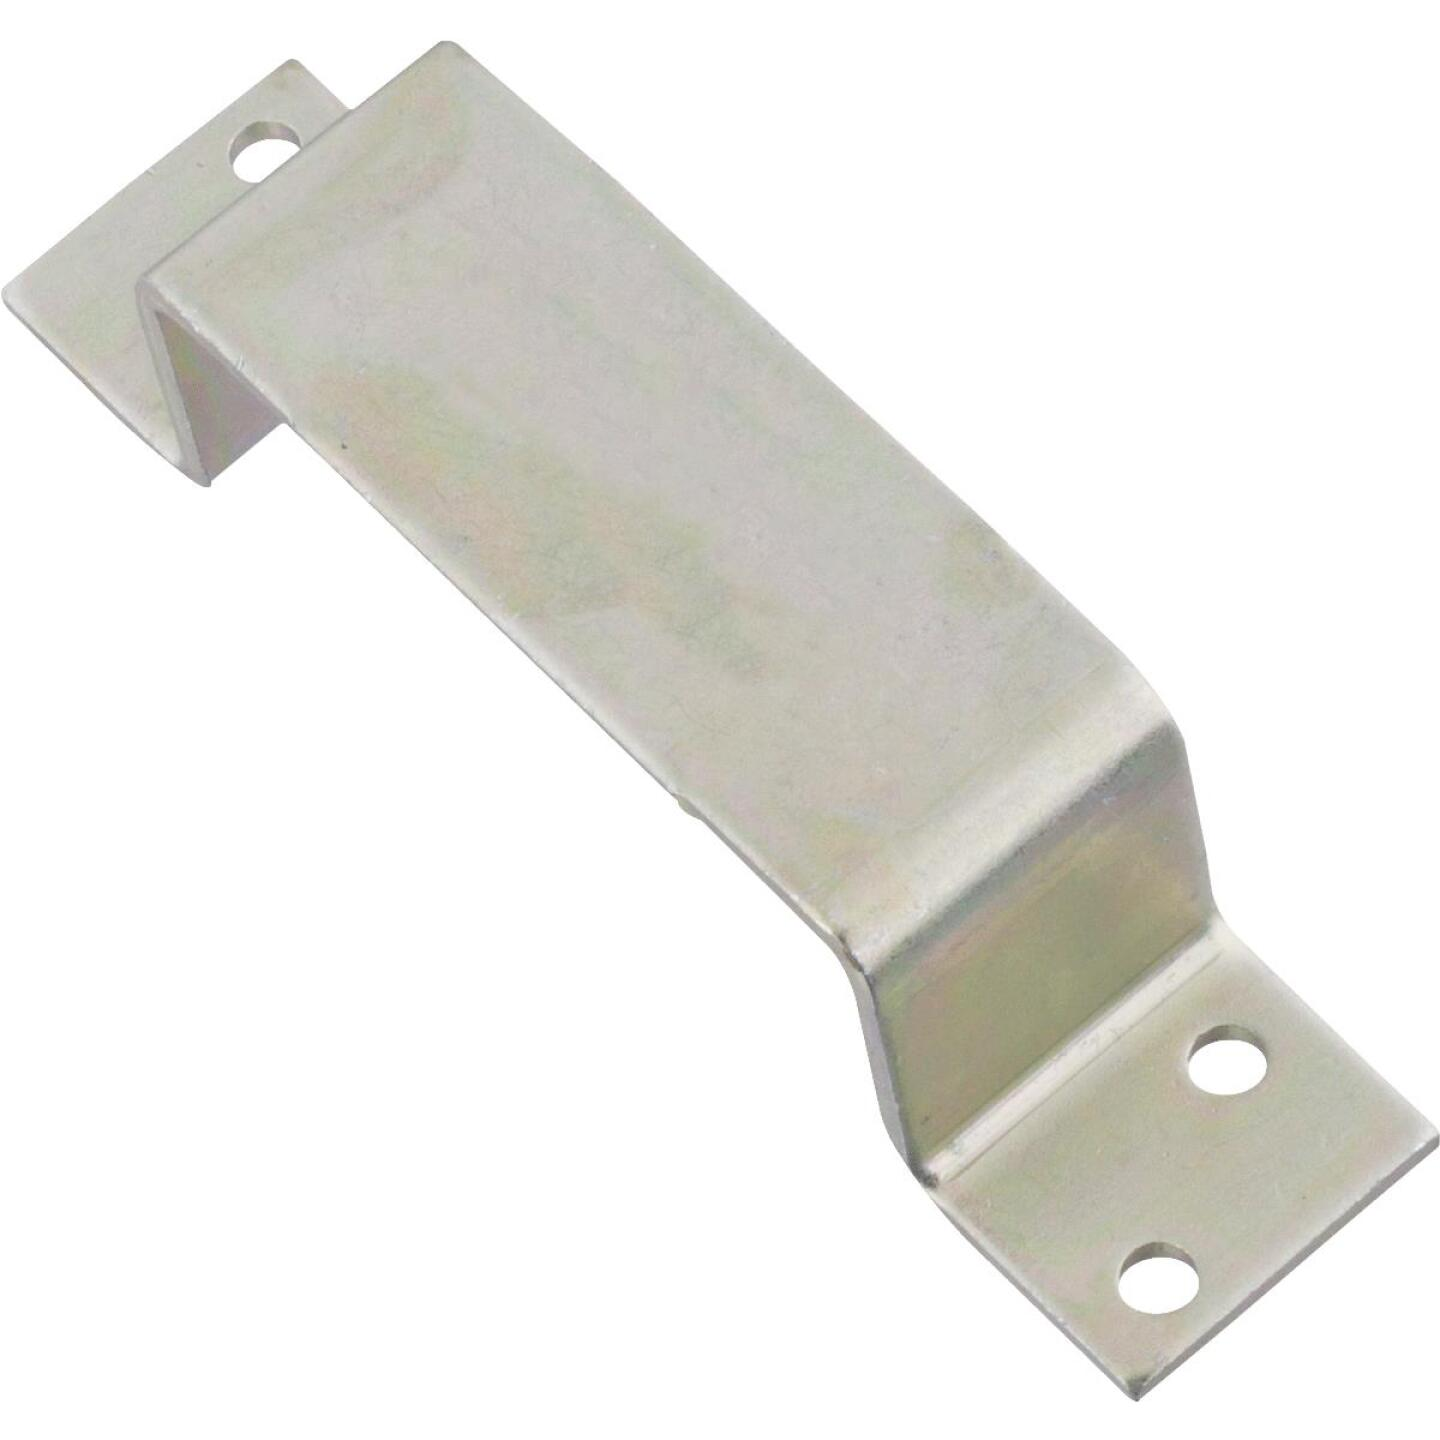 National 14BC Zinc Heavy Duty Closed Bar Holder Image 1